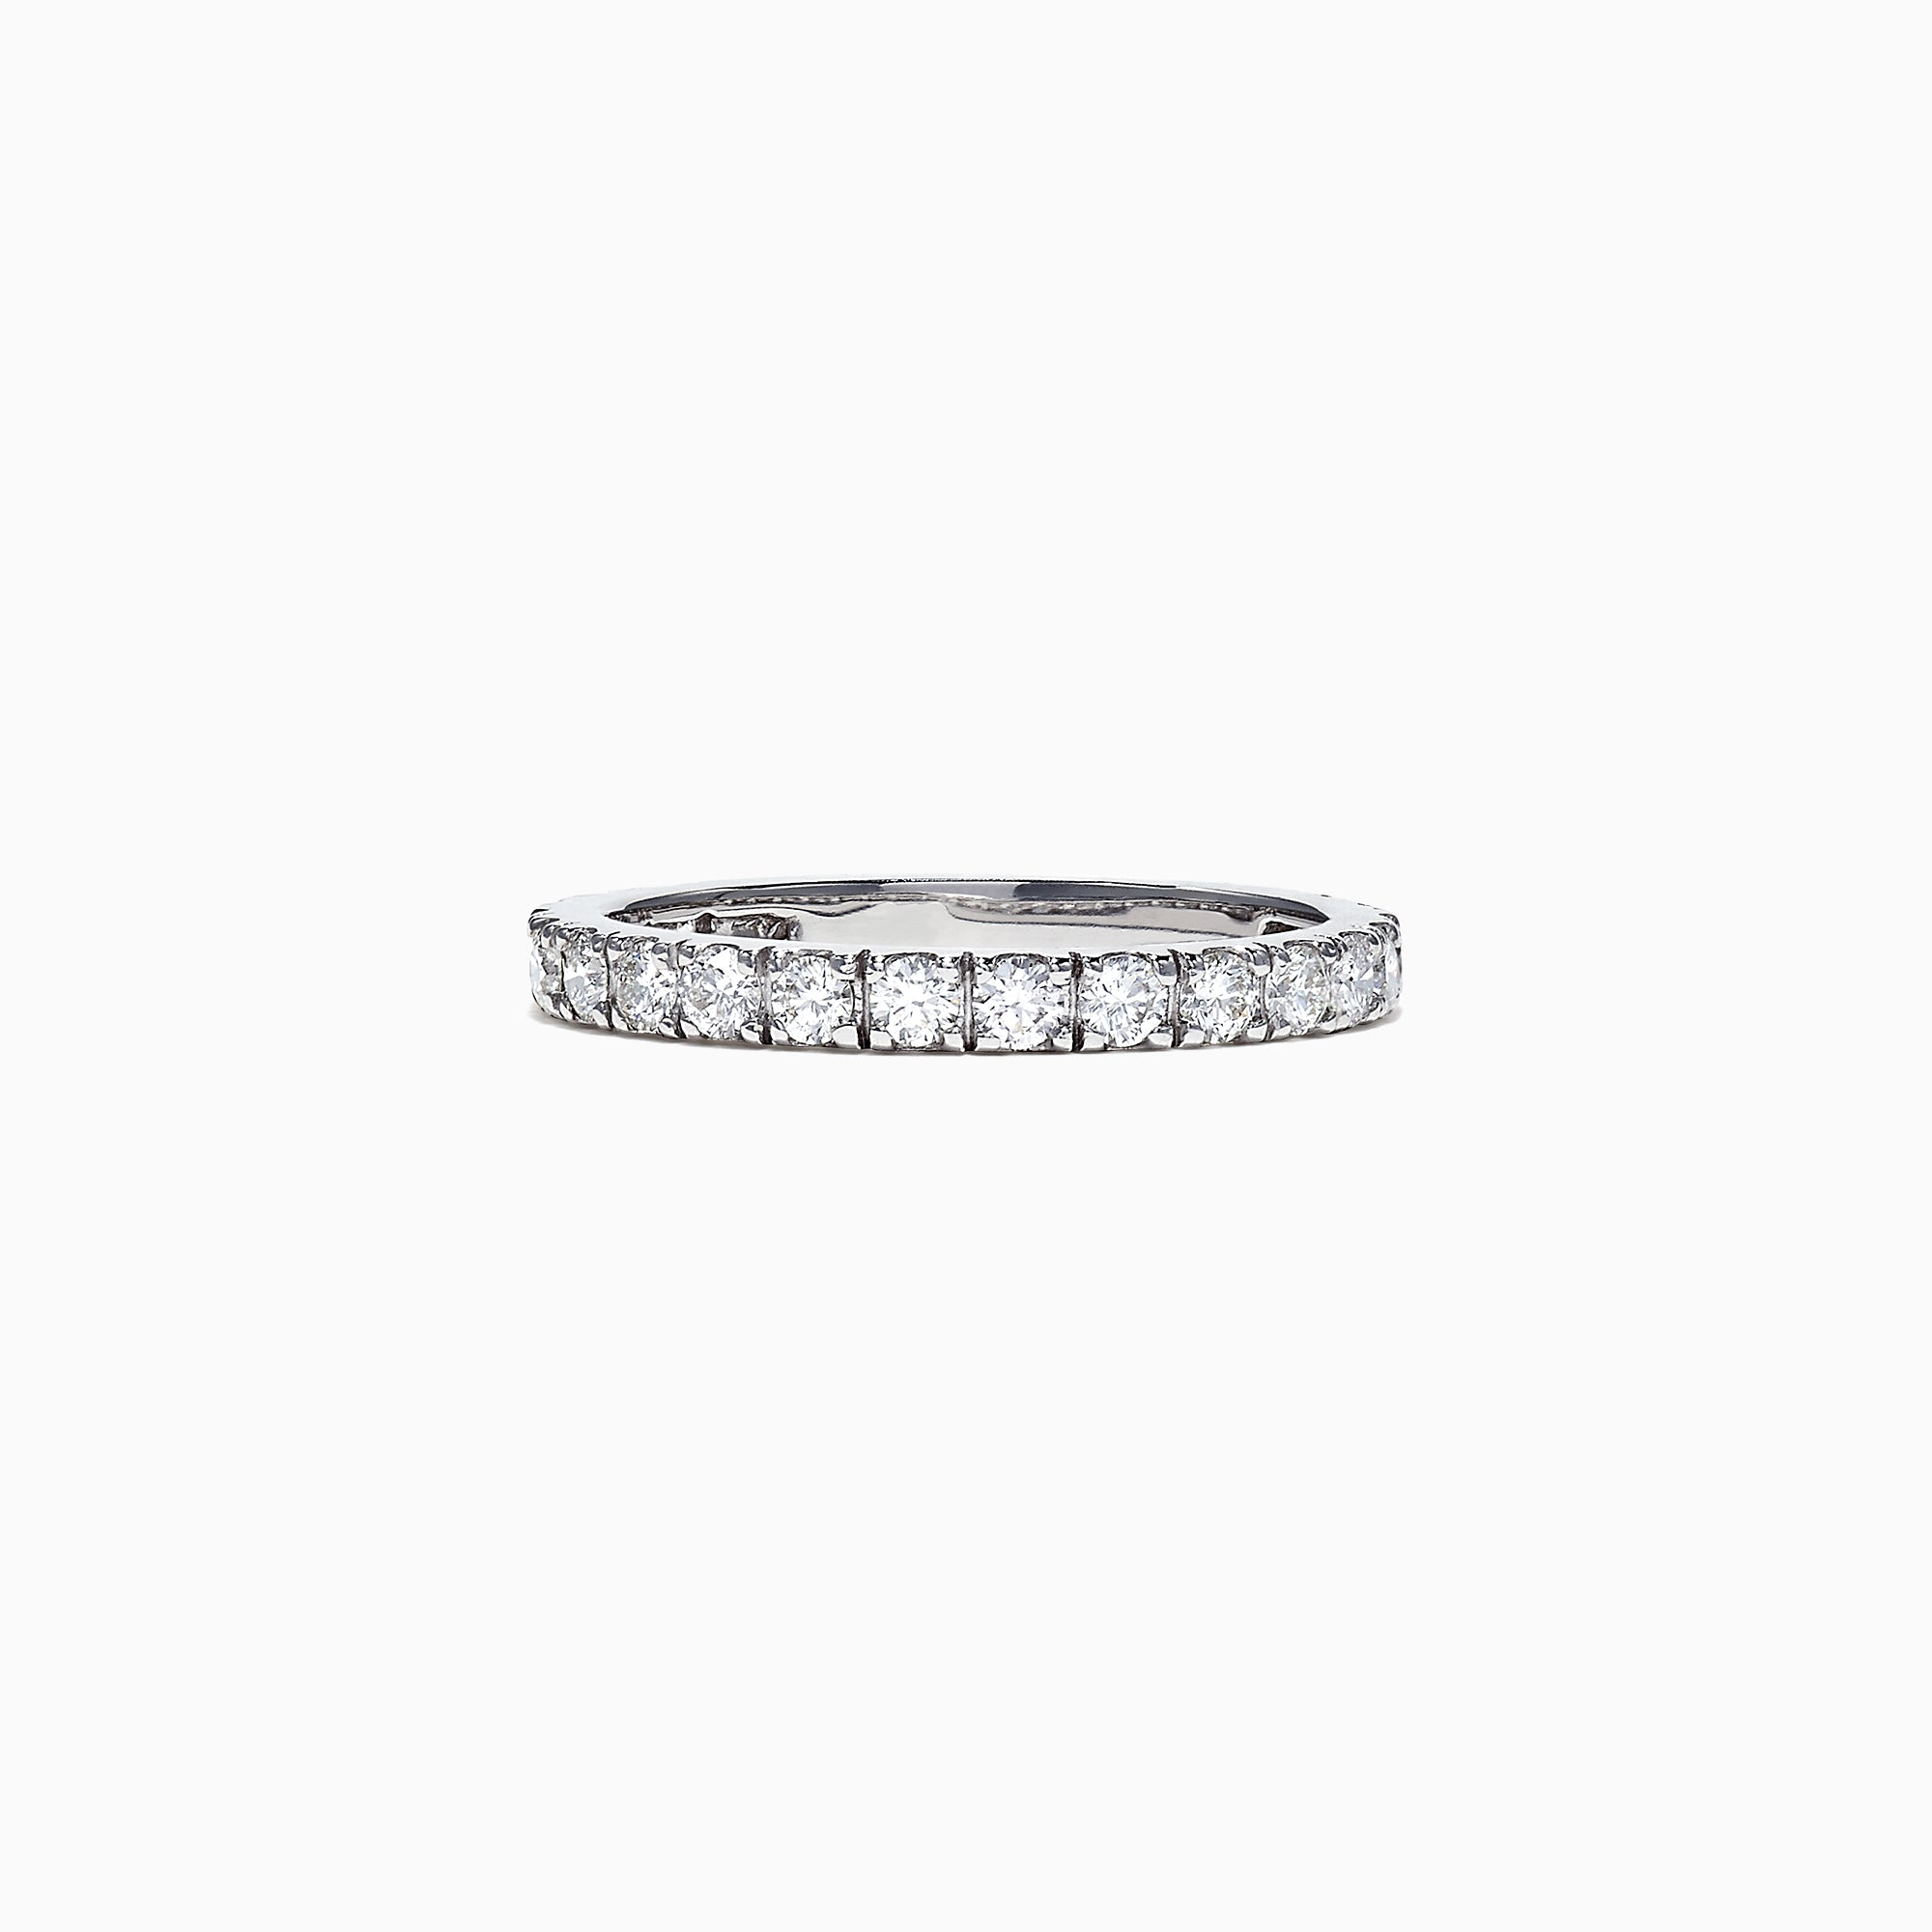 Effy Pave Classica 14K White Gold Diamond Stack Ring, 0.65 TCW